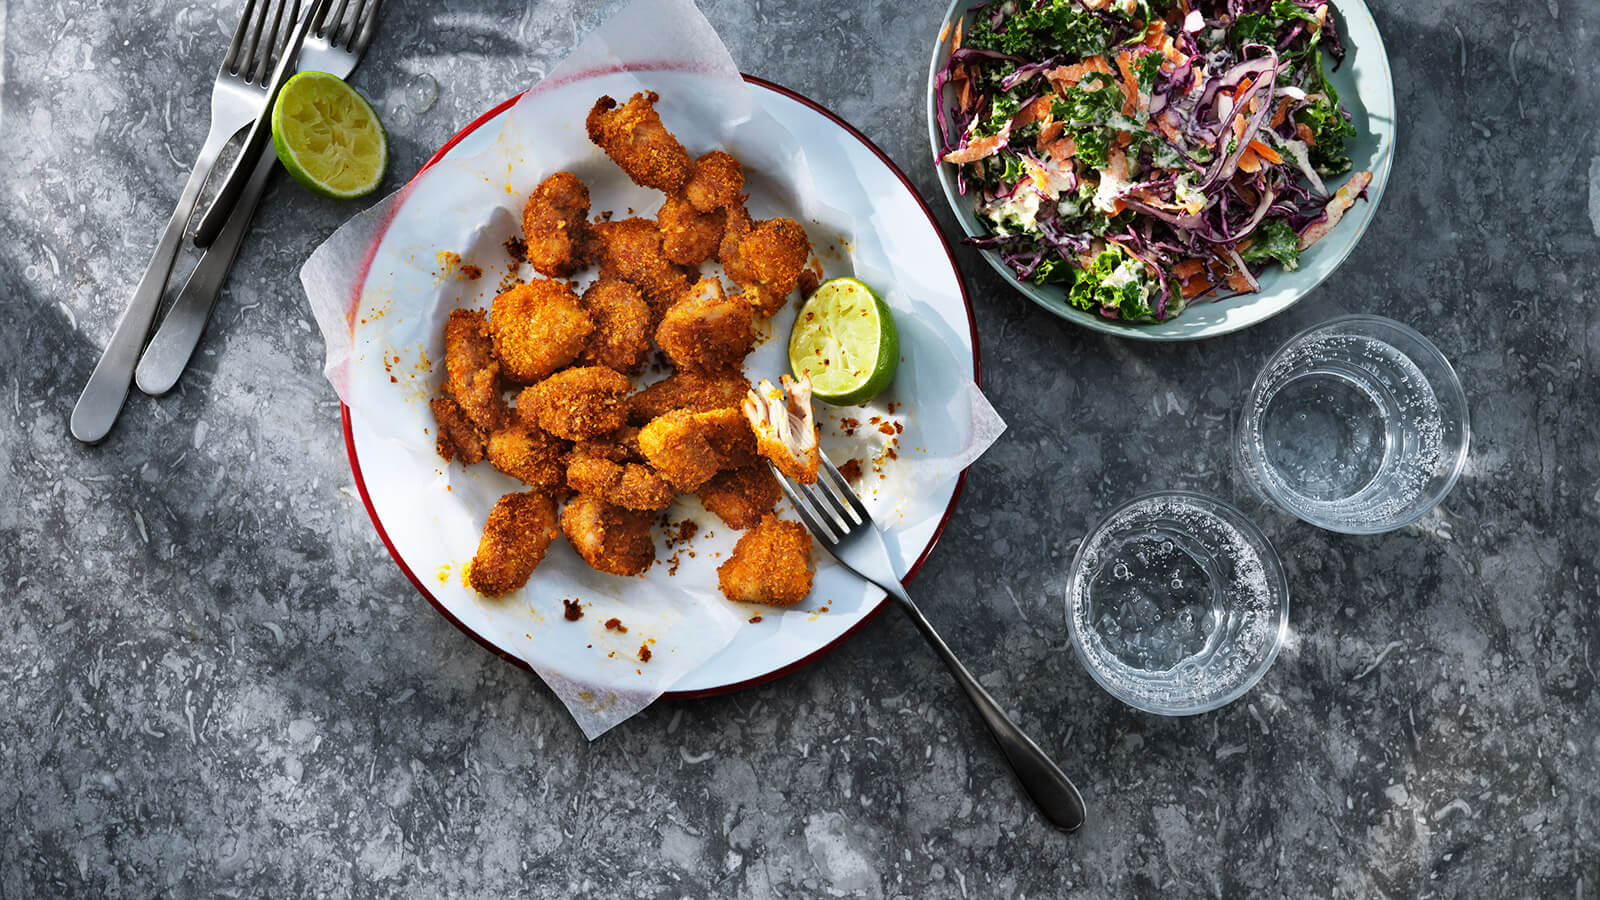 Crispy chicken nuggets and a bowl of coleslaw